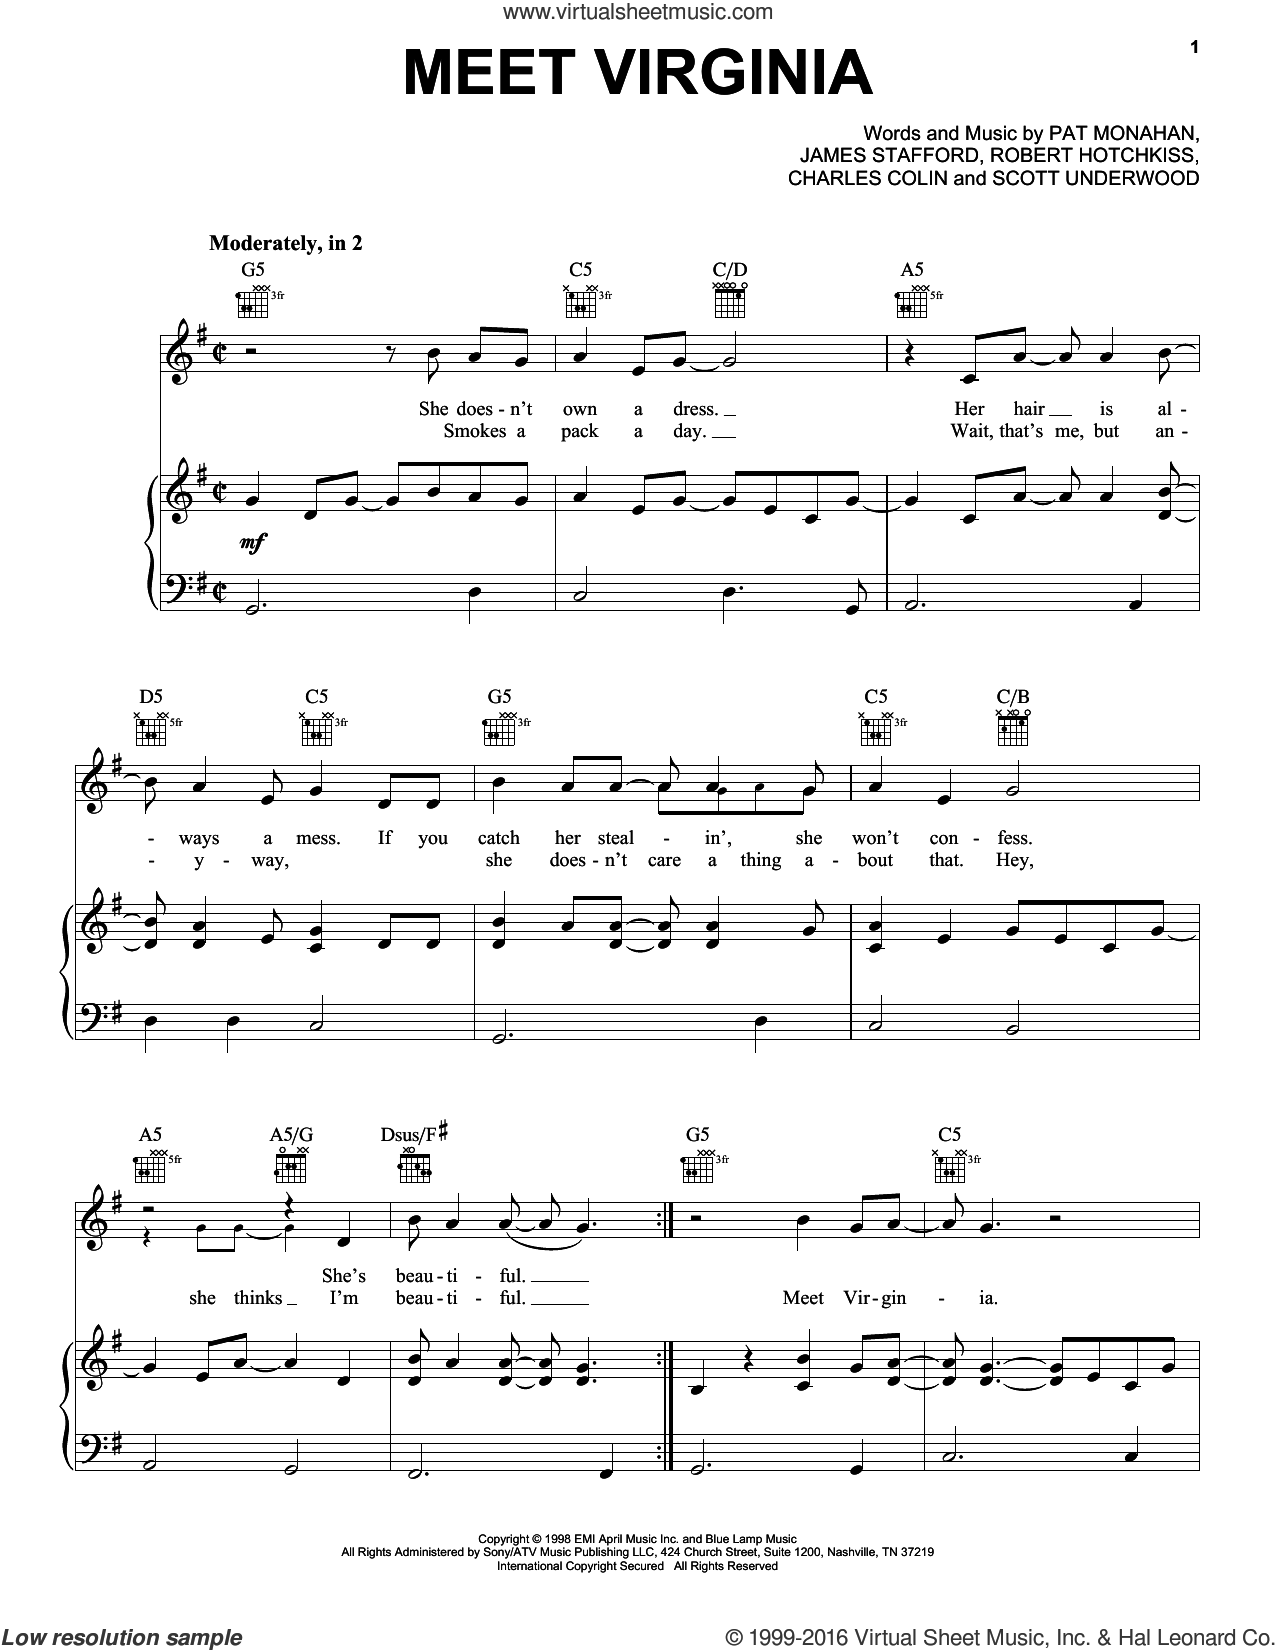 Meet Virginia sheet music for voice, piano or guitar by Train, Jimmy Stafford, Pat Monahan and Rob Hotchkiss, intermediate skill level